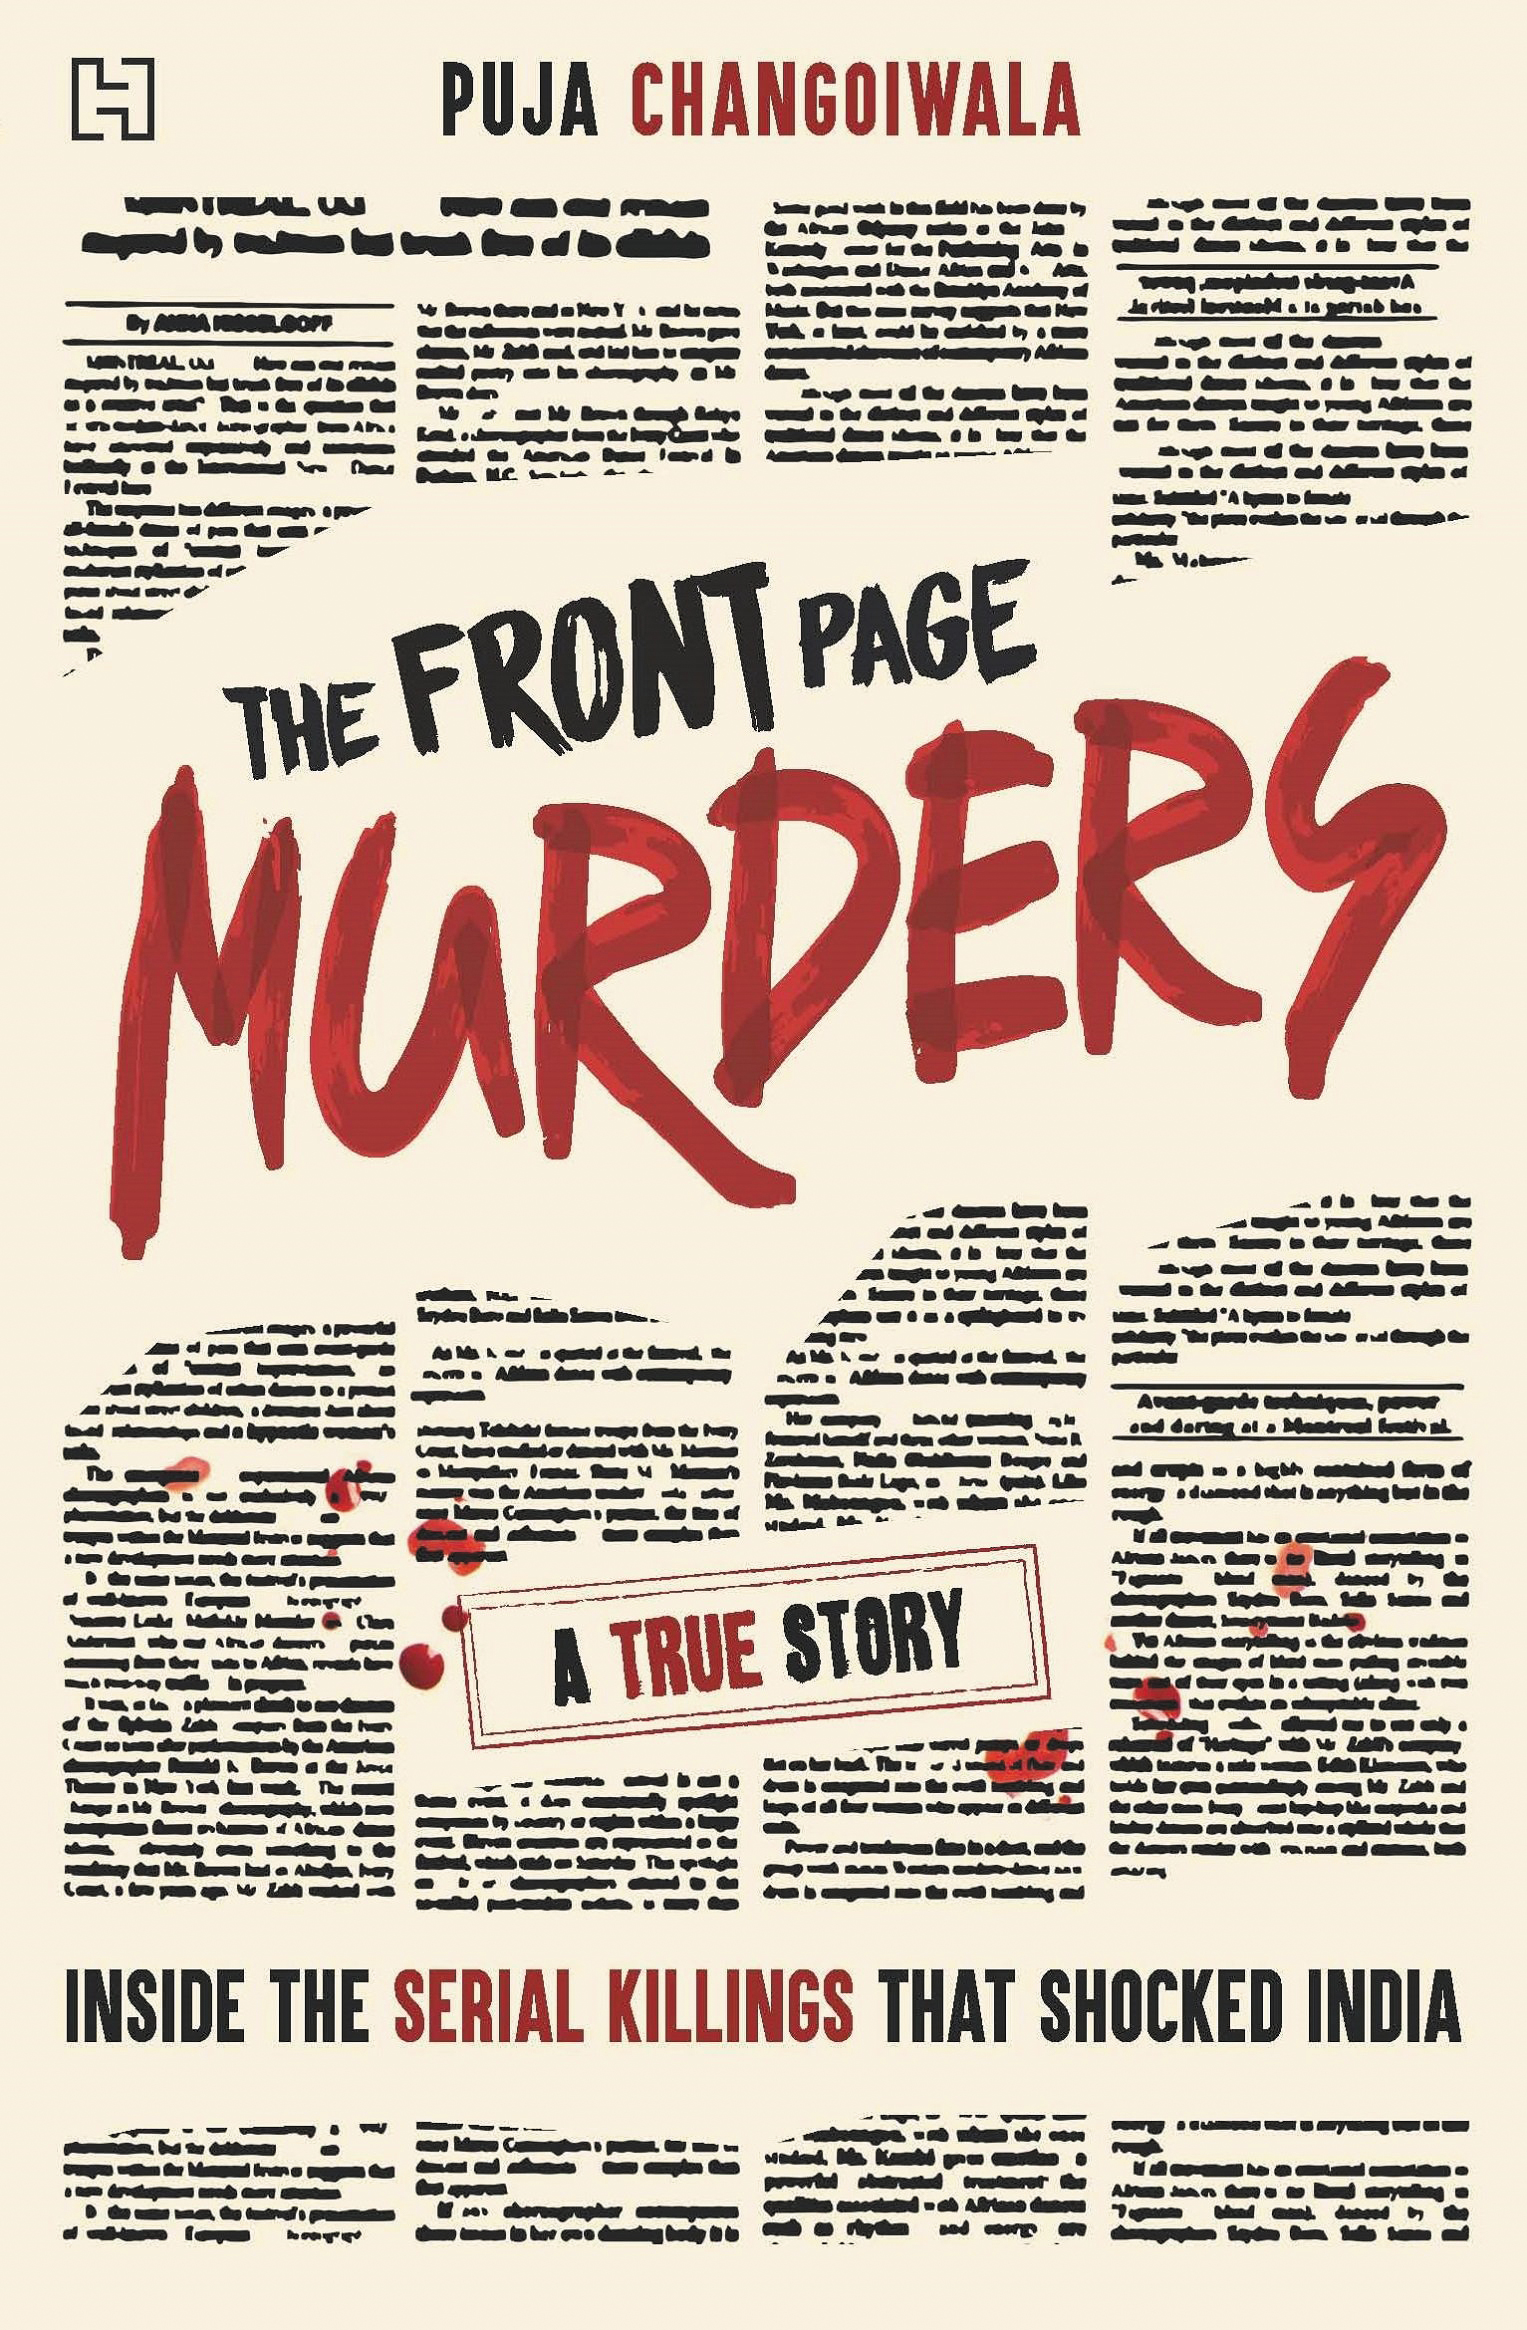 The night reporter: Chronicling murders that shook the country